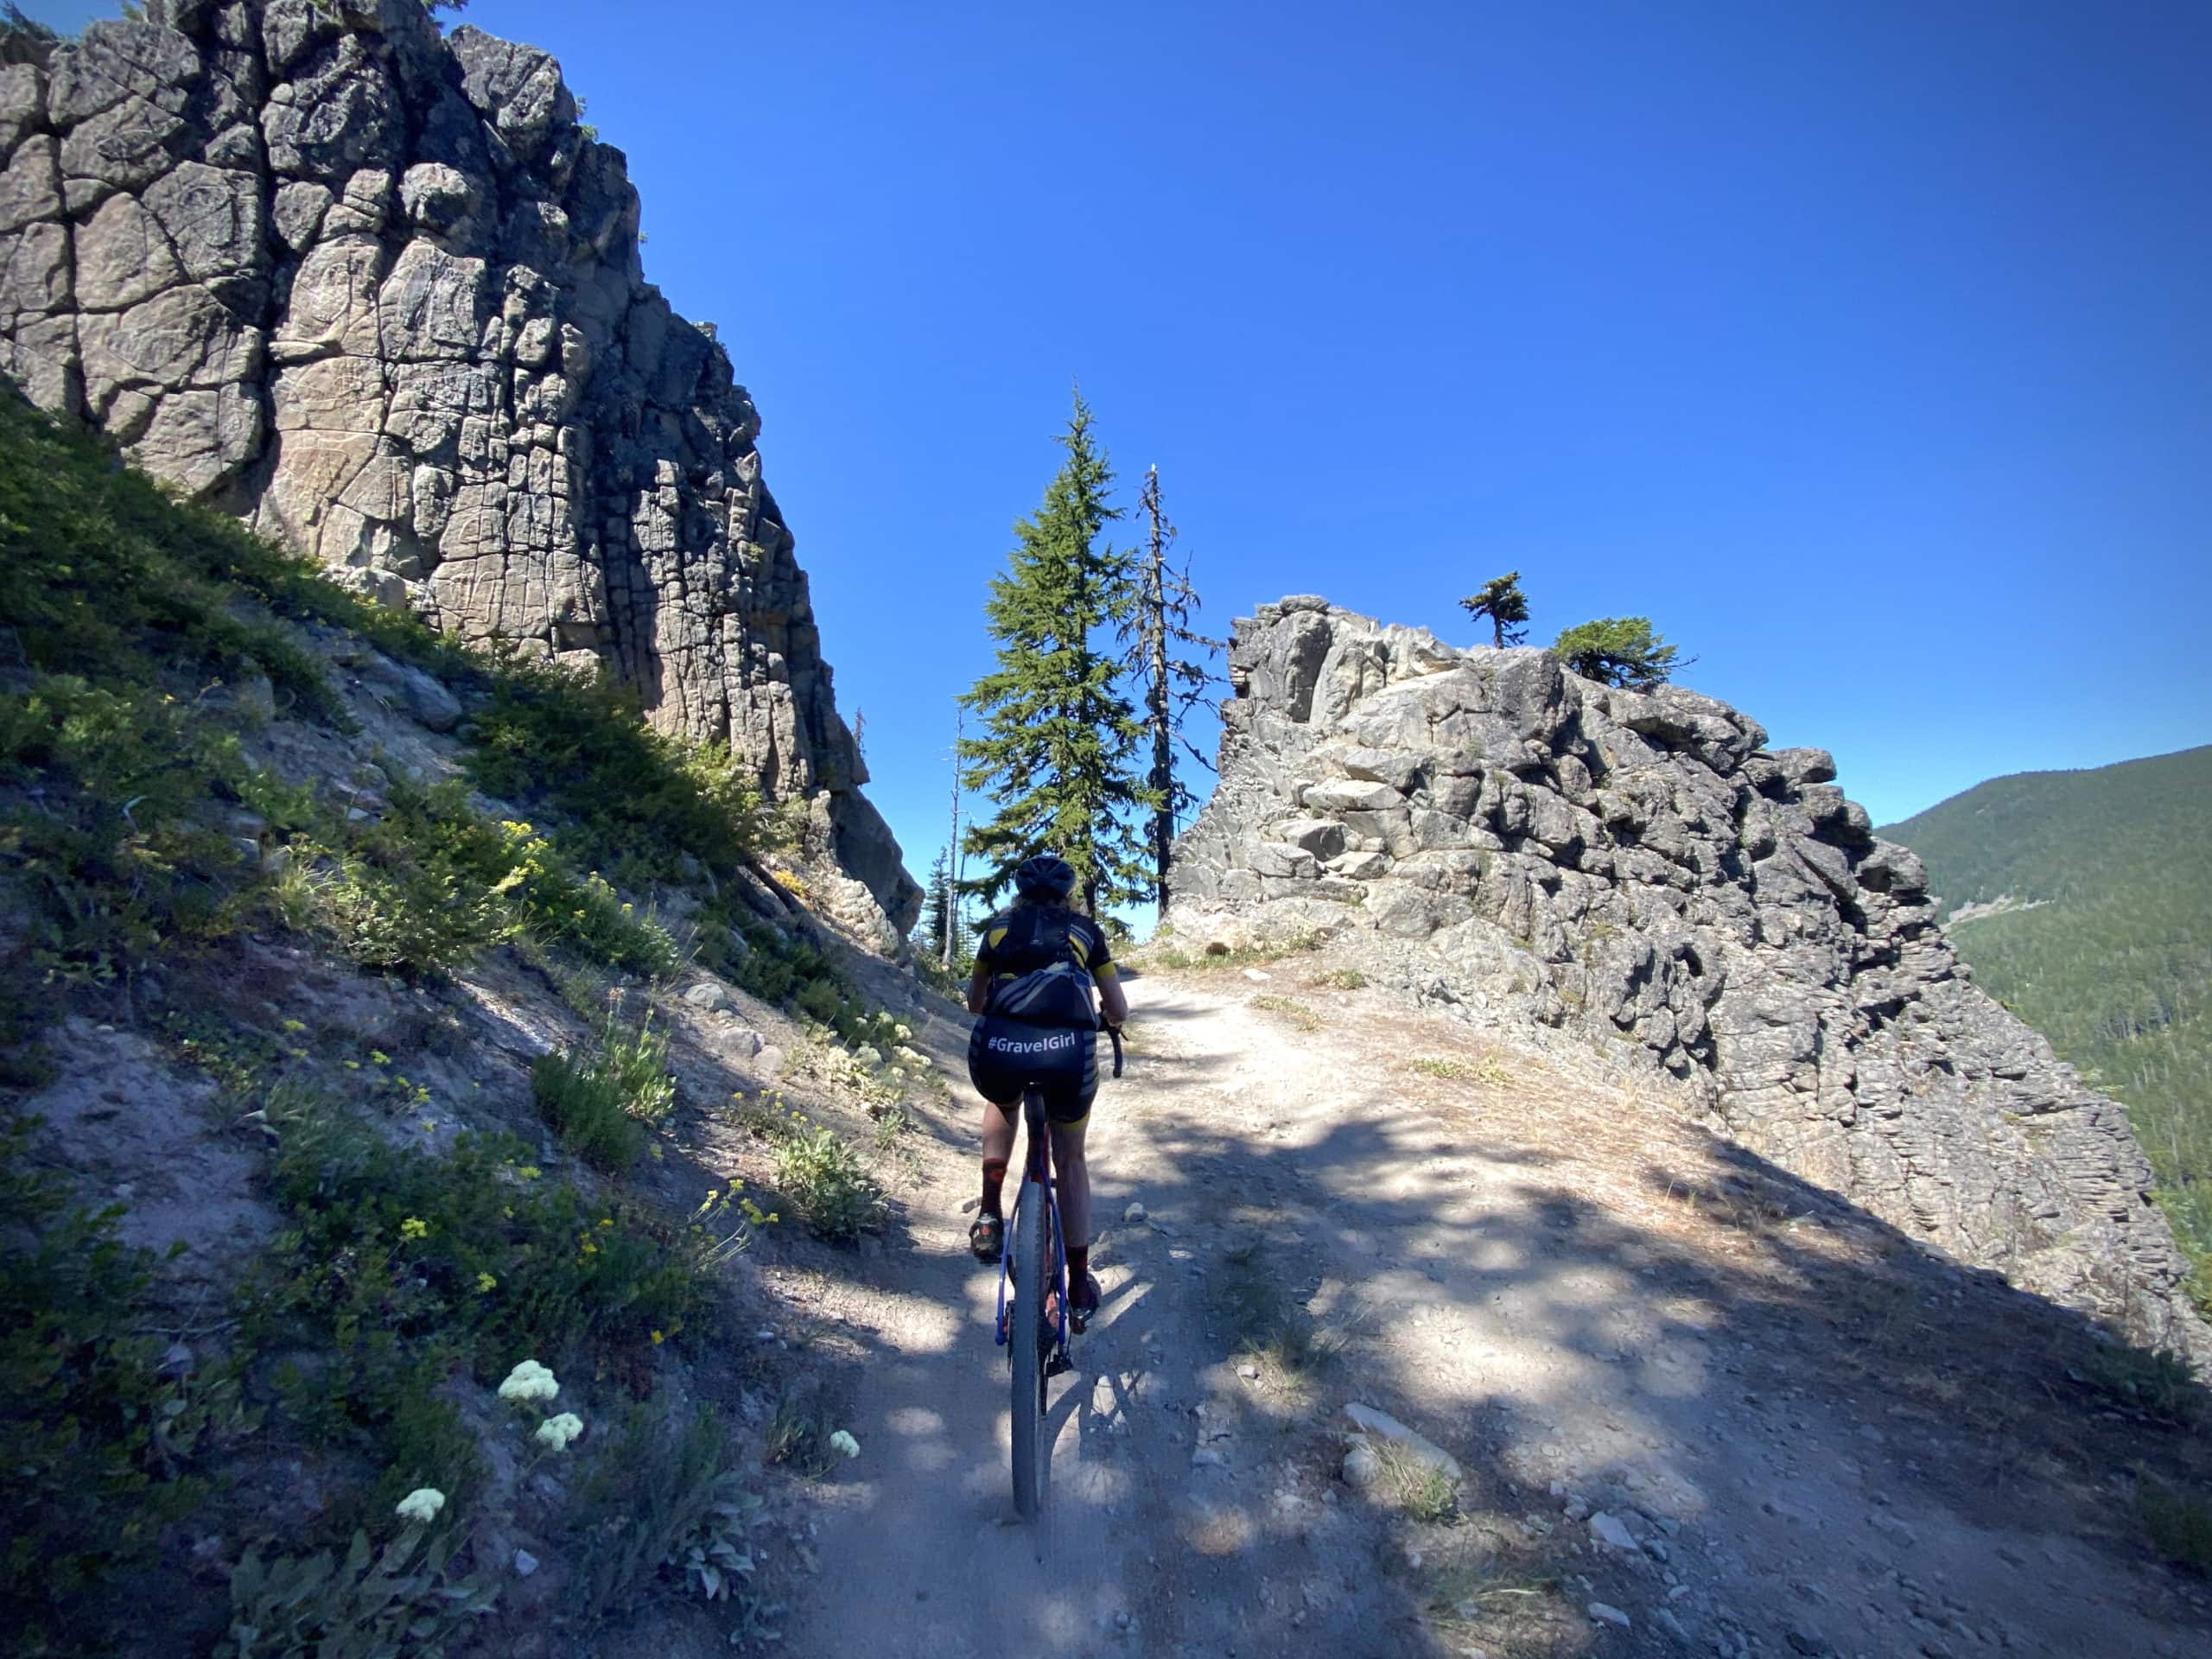 Gravel cyclist climbing rugged jeep track with a split in the rock up ahead. Mt Hood National forest.